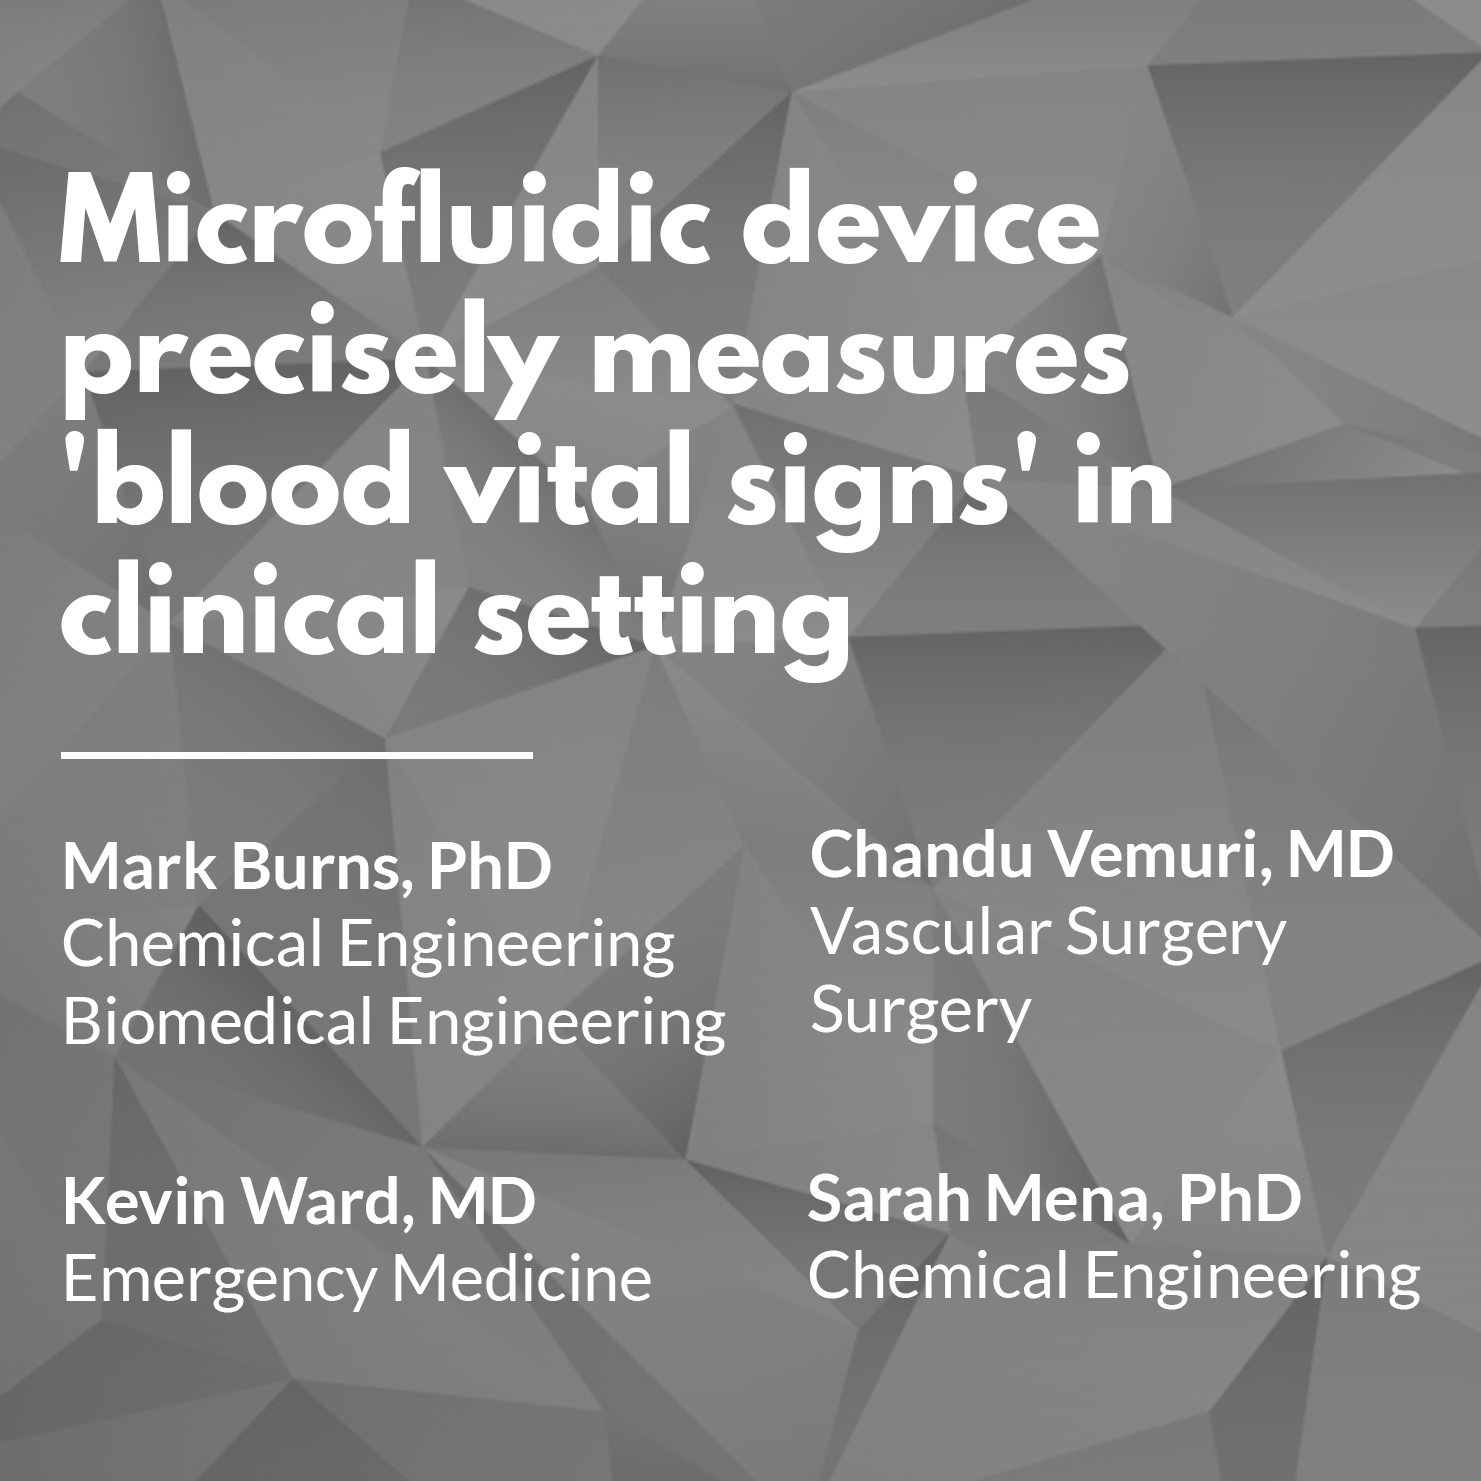 Life Support - Microfluidic device precisely measures 'blood vital signs' in clinical setting.png